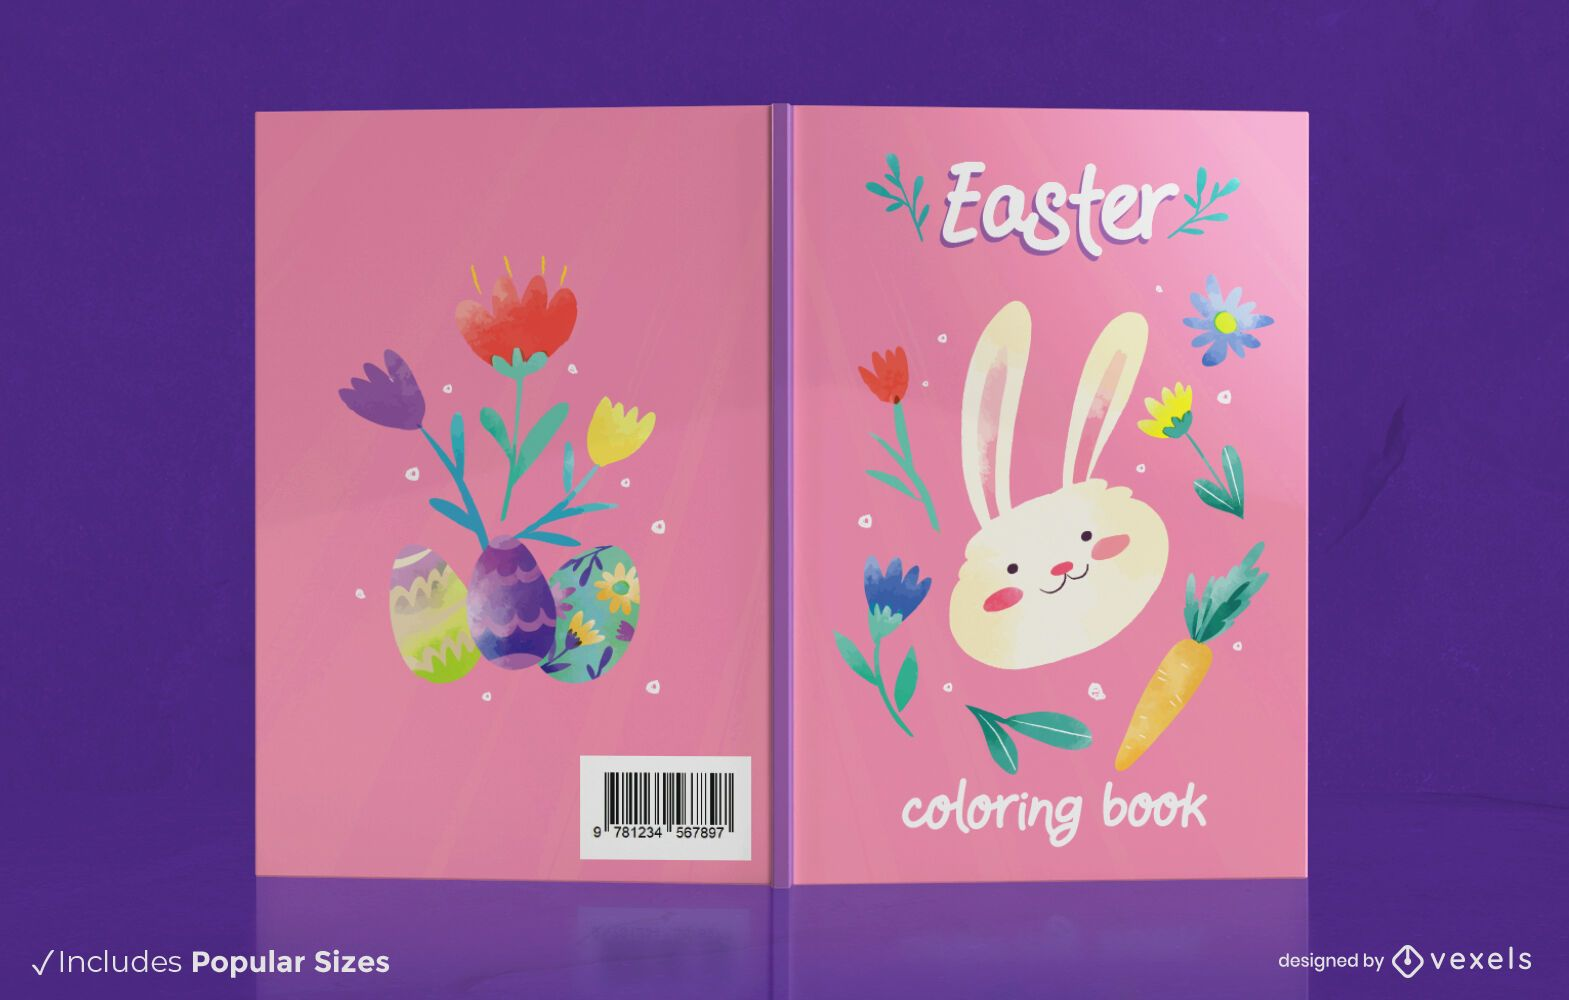 Easter coloring book cover design